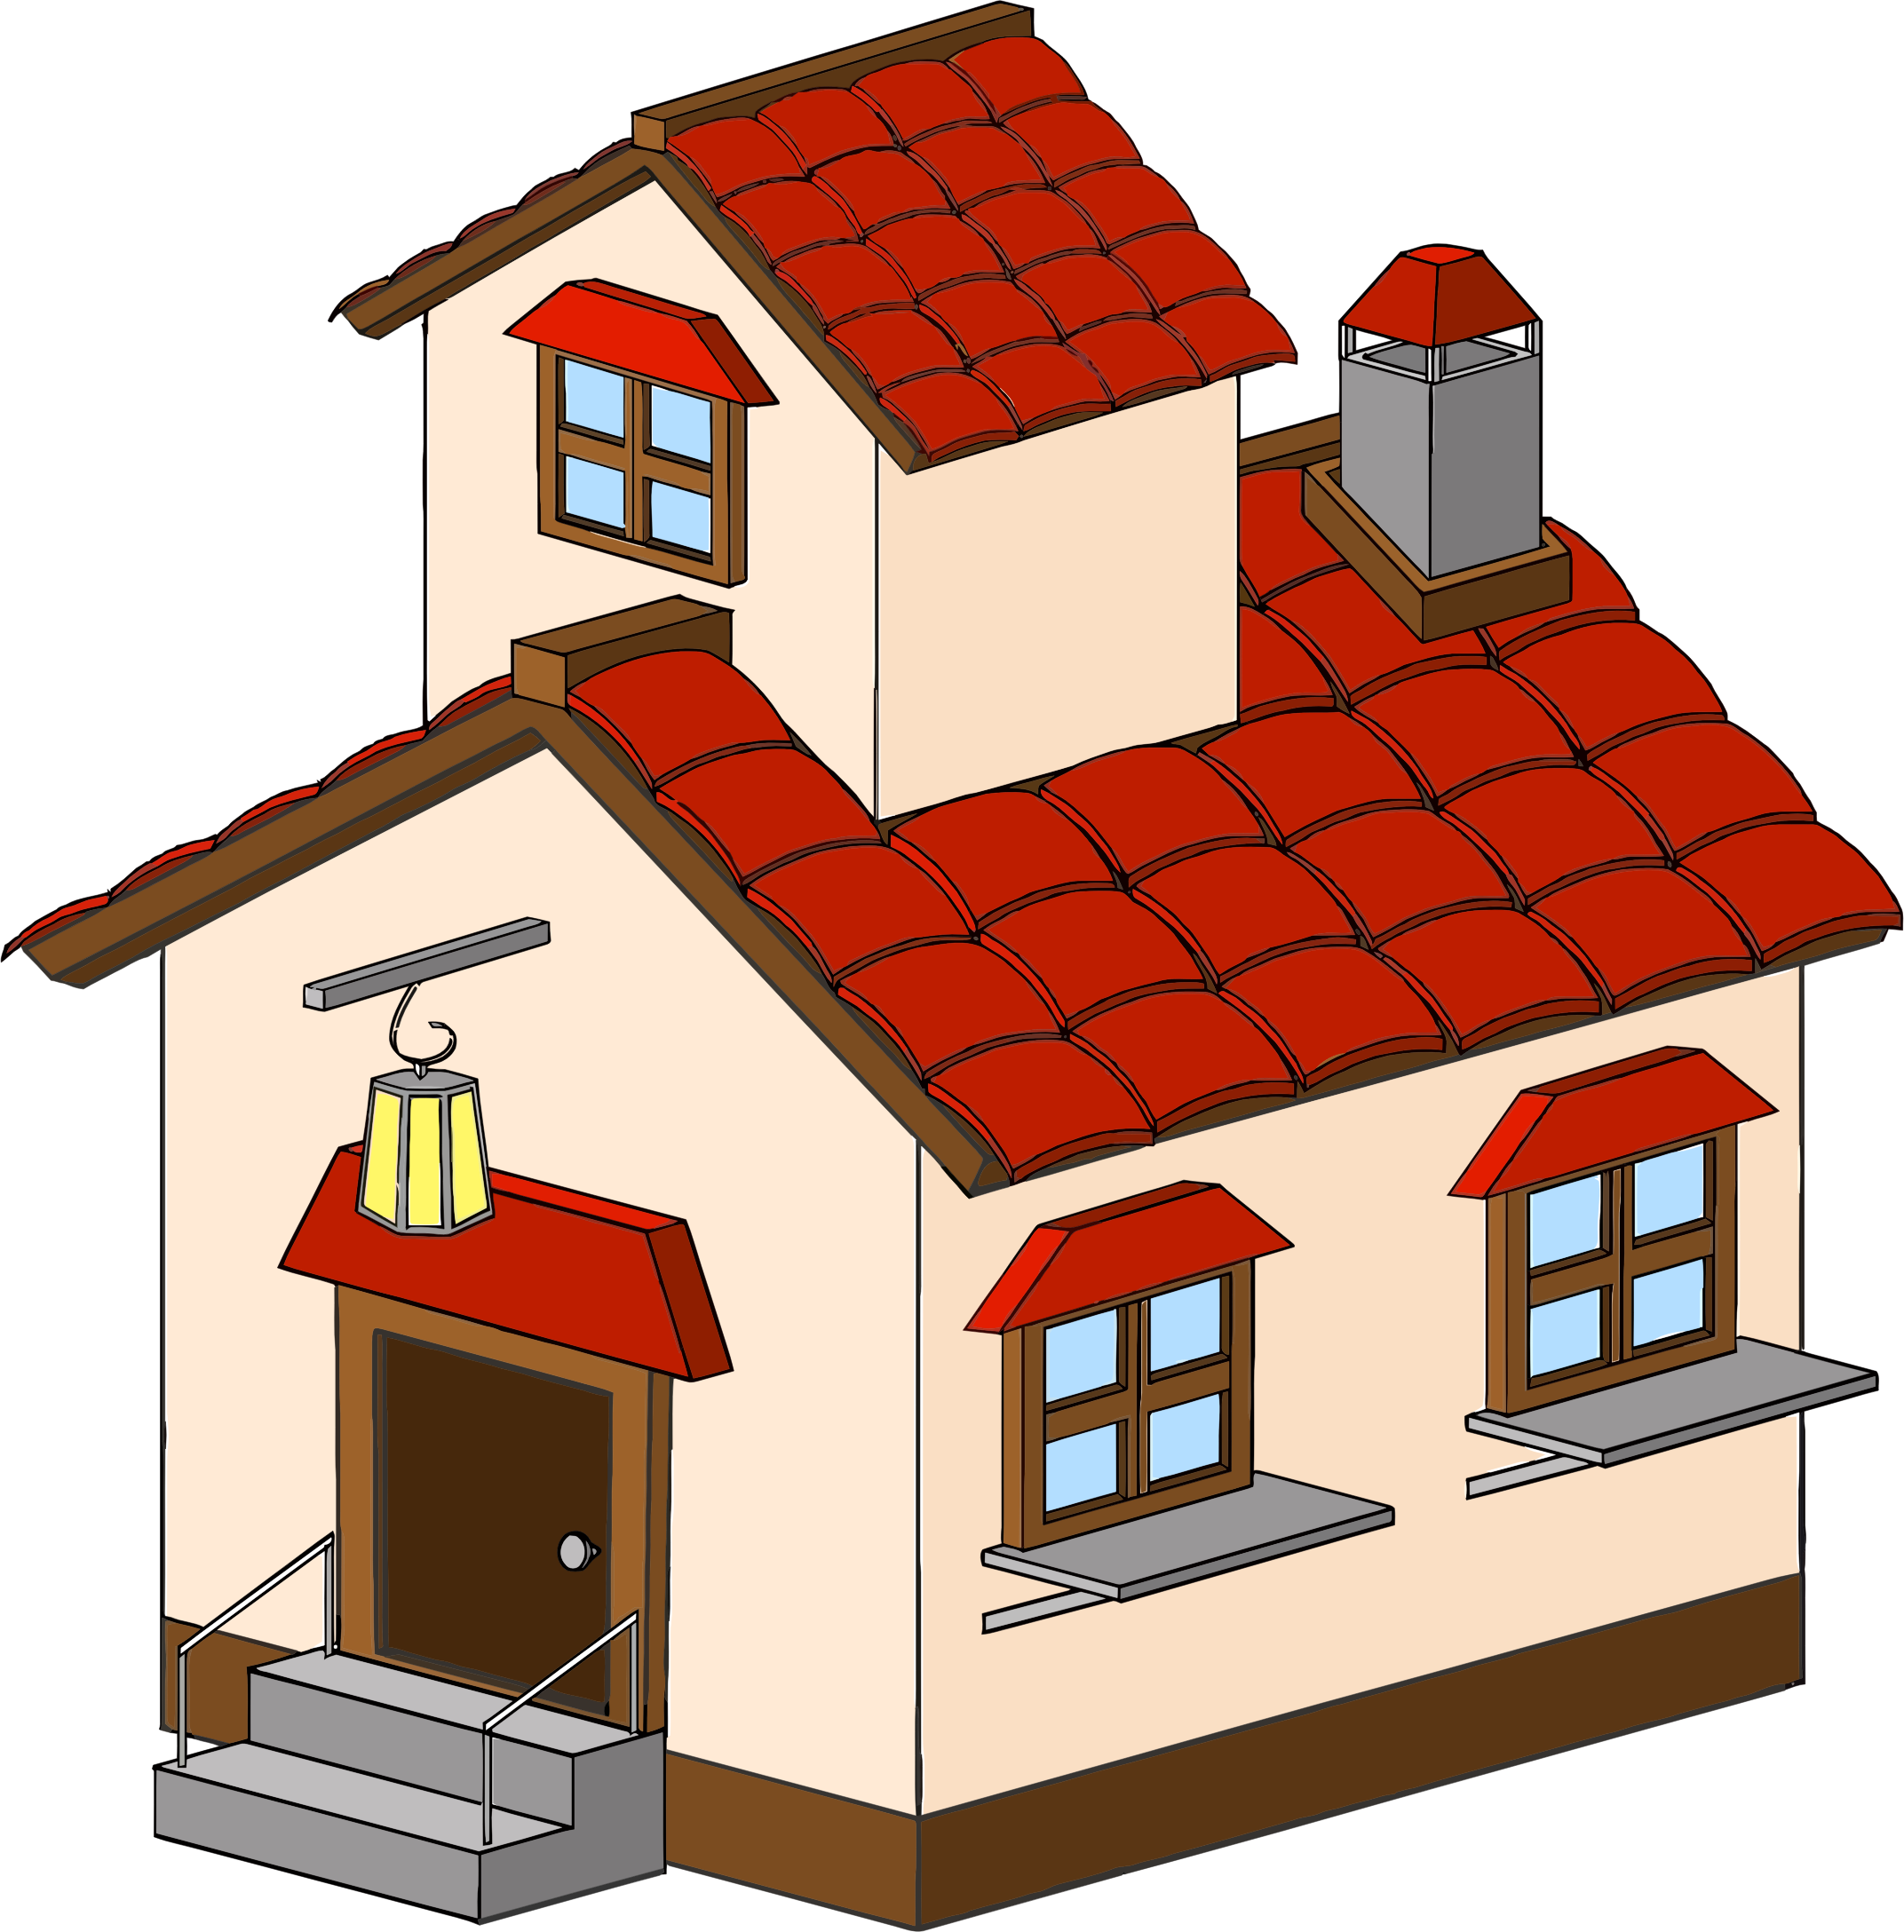 jpg freeuse Mansion clipart village house. Cartoon haunted picture free.